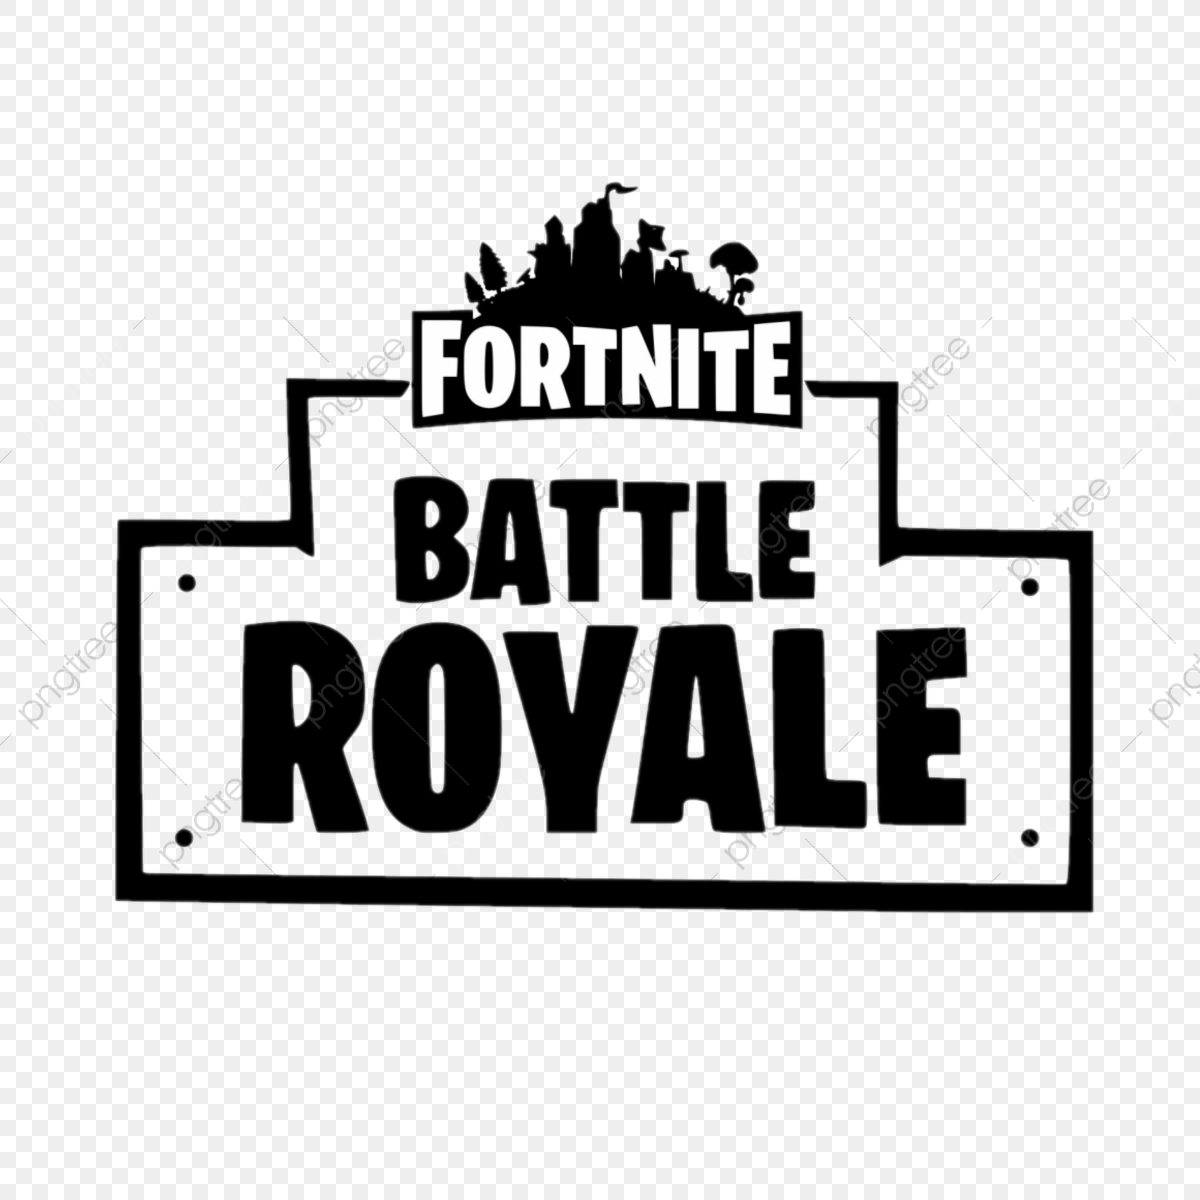 Fortnite Black, Fortnite, Pc, Video PNG and Vector with Transparent.